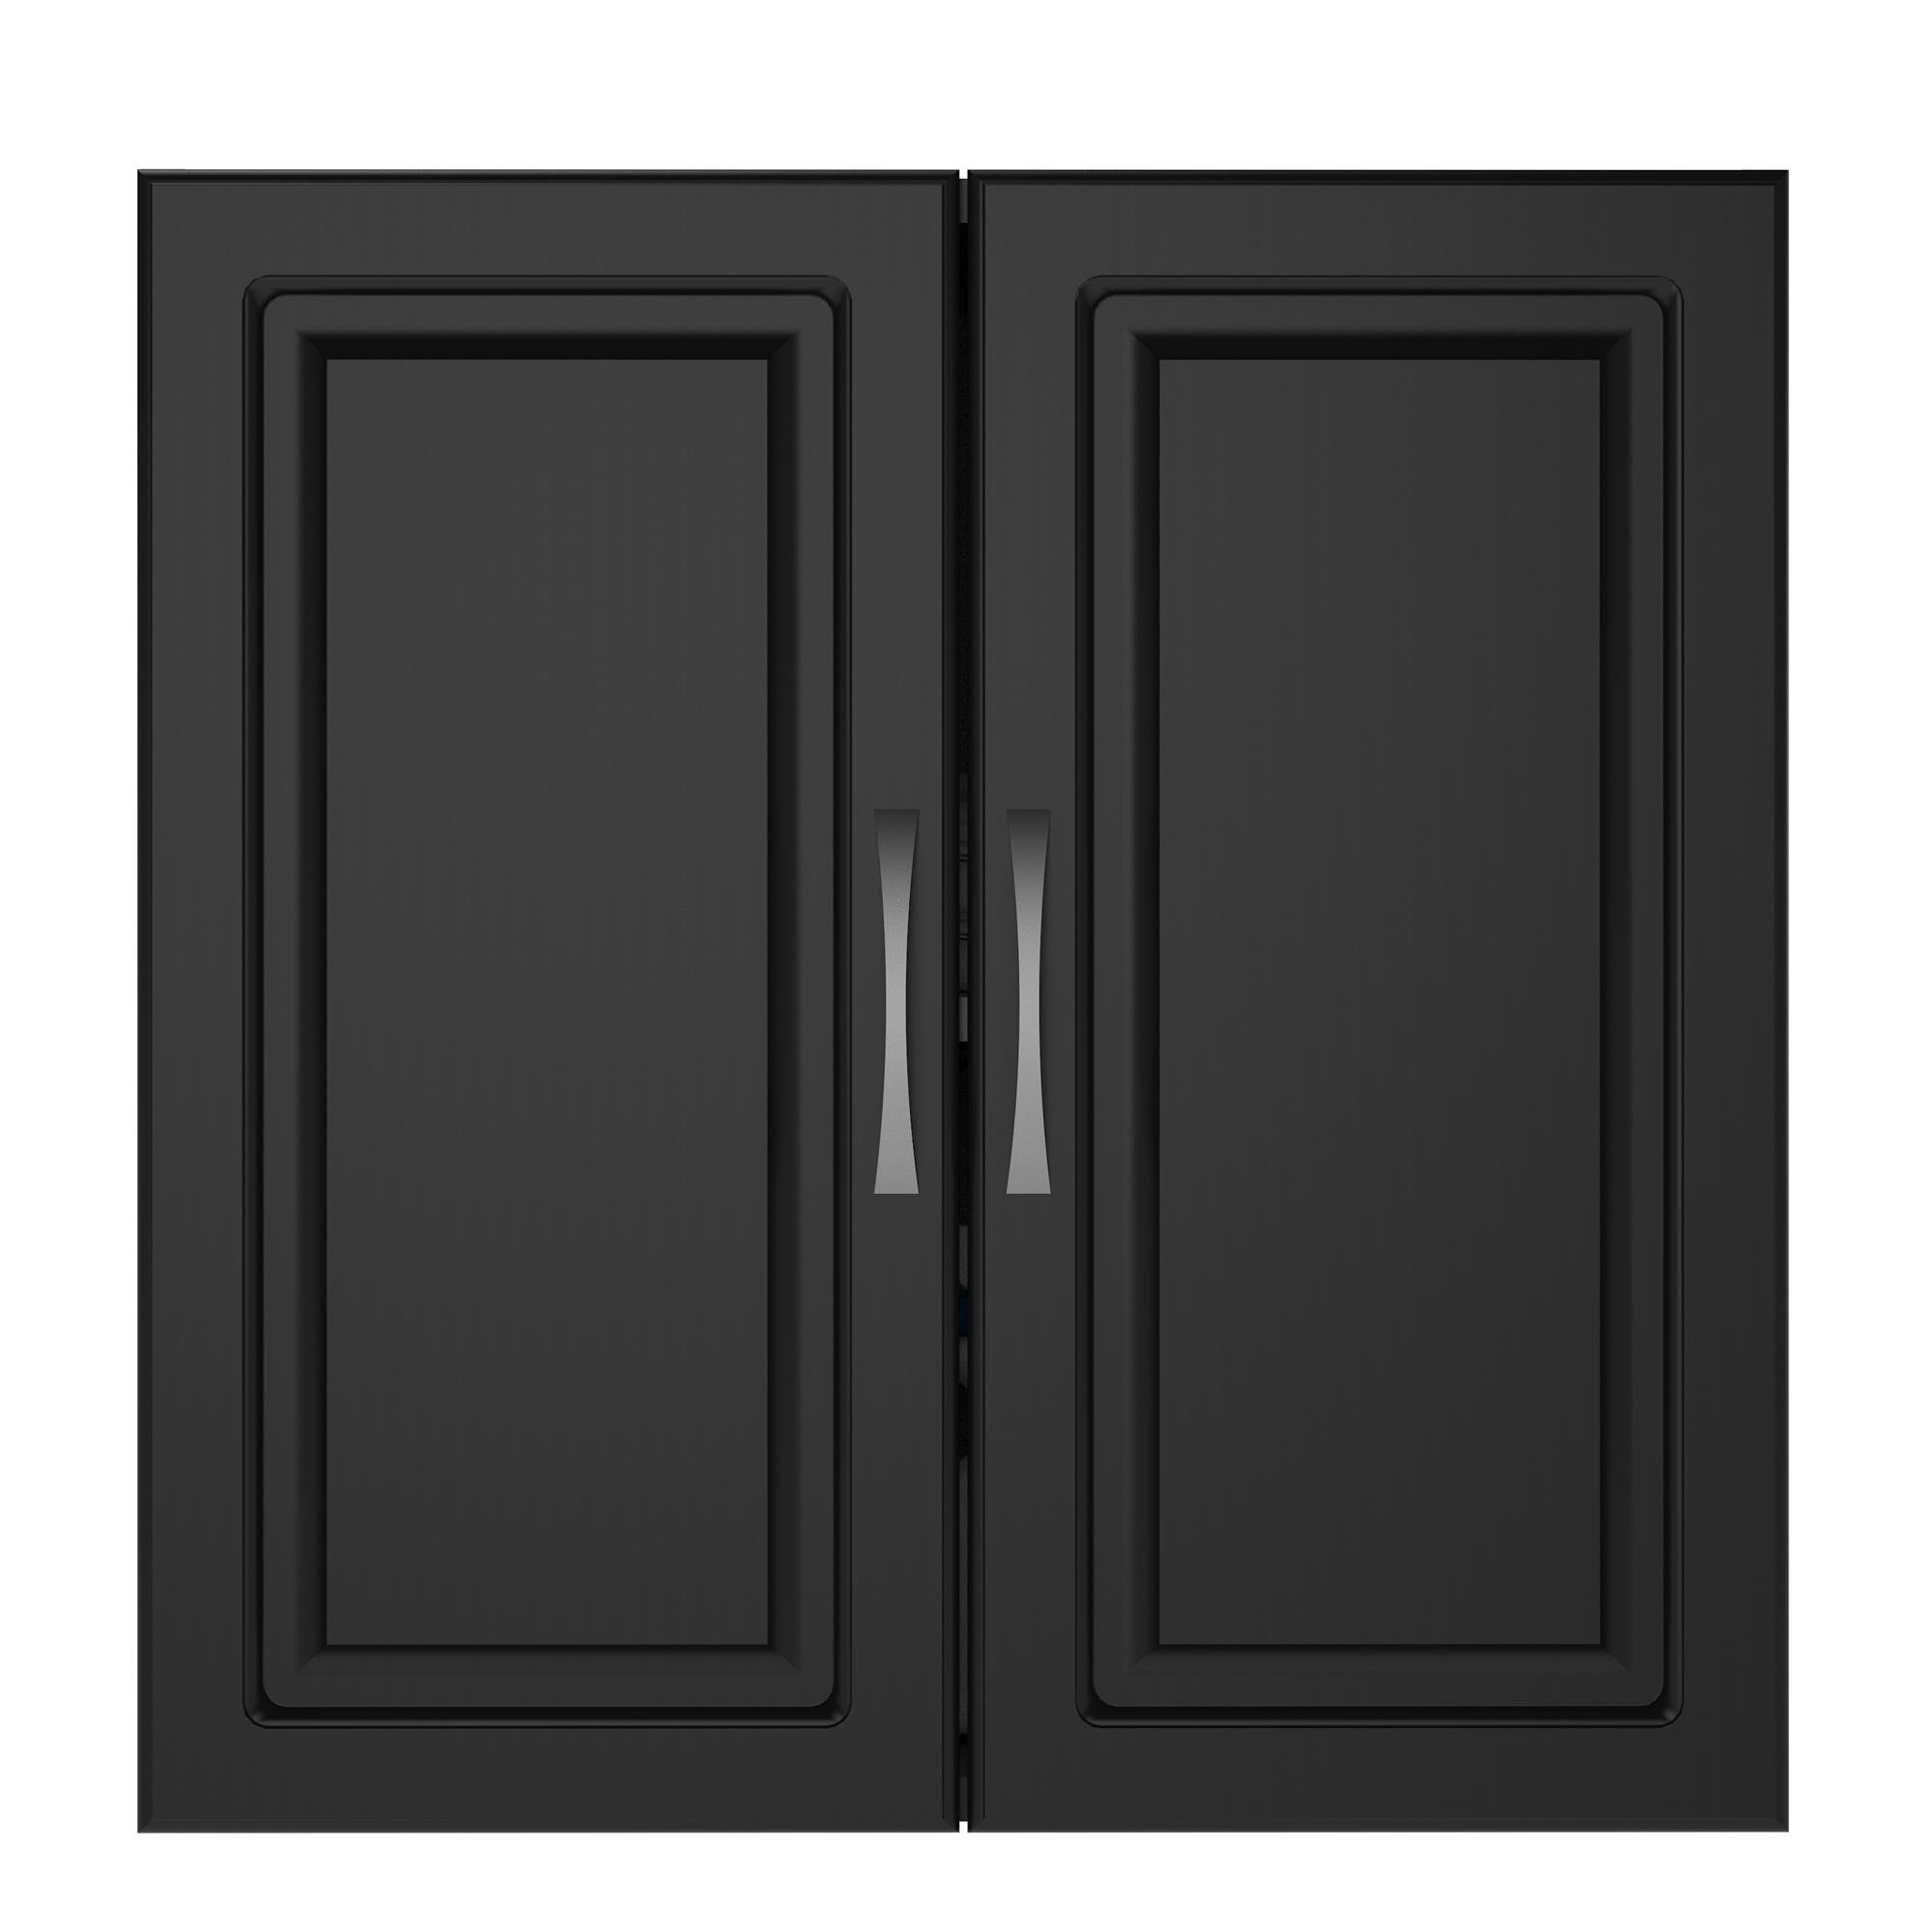 SystemBuild Kendall Wall Cabinet, 24'', Black